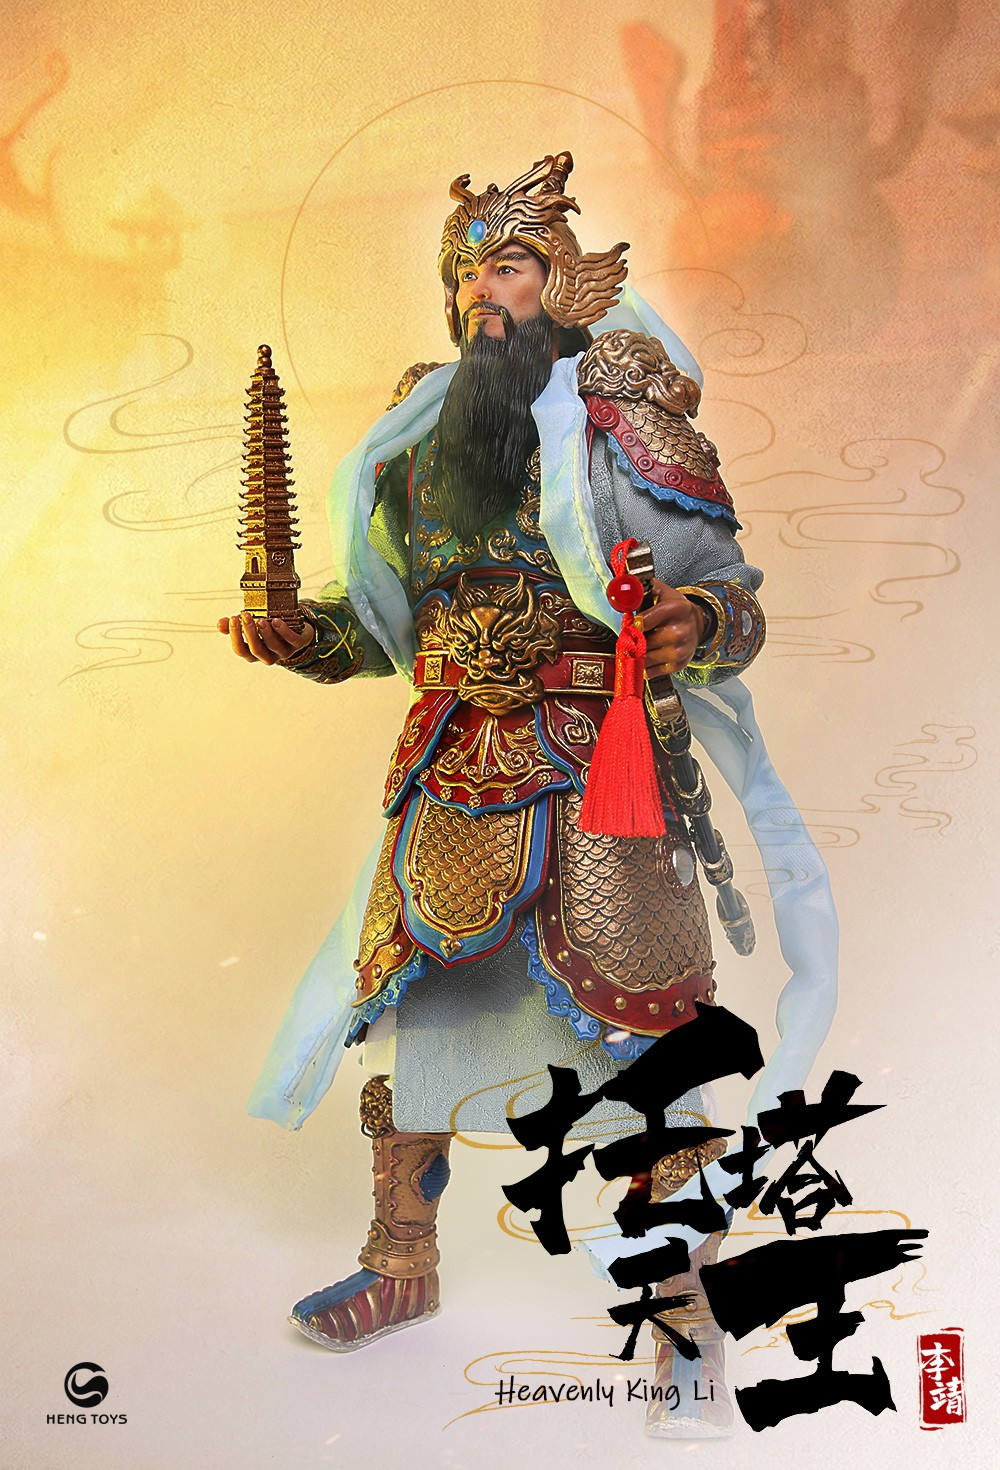 NEW PRODUCT: HENG TOYS: 1/6 Chinese Mythology Taoist Protector God Heavenly King Li, Li Tianwang action figure (PE-005) 14031010